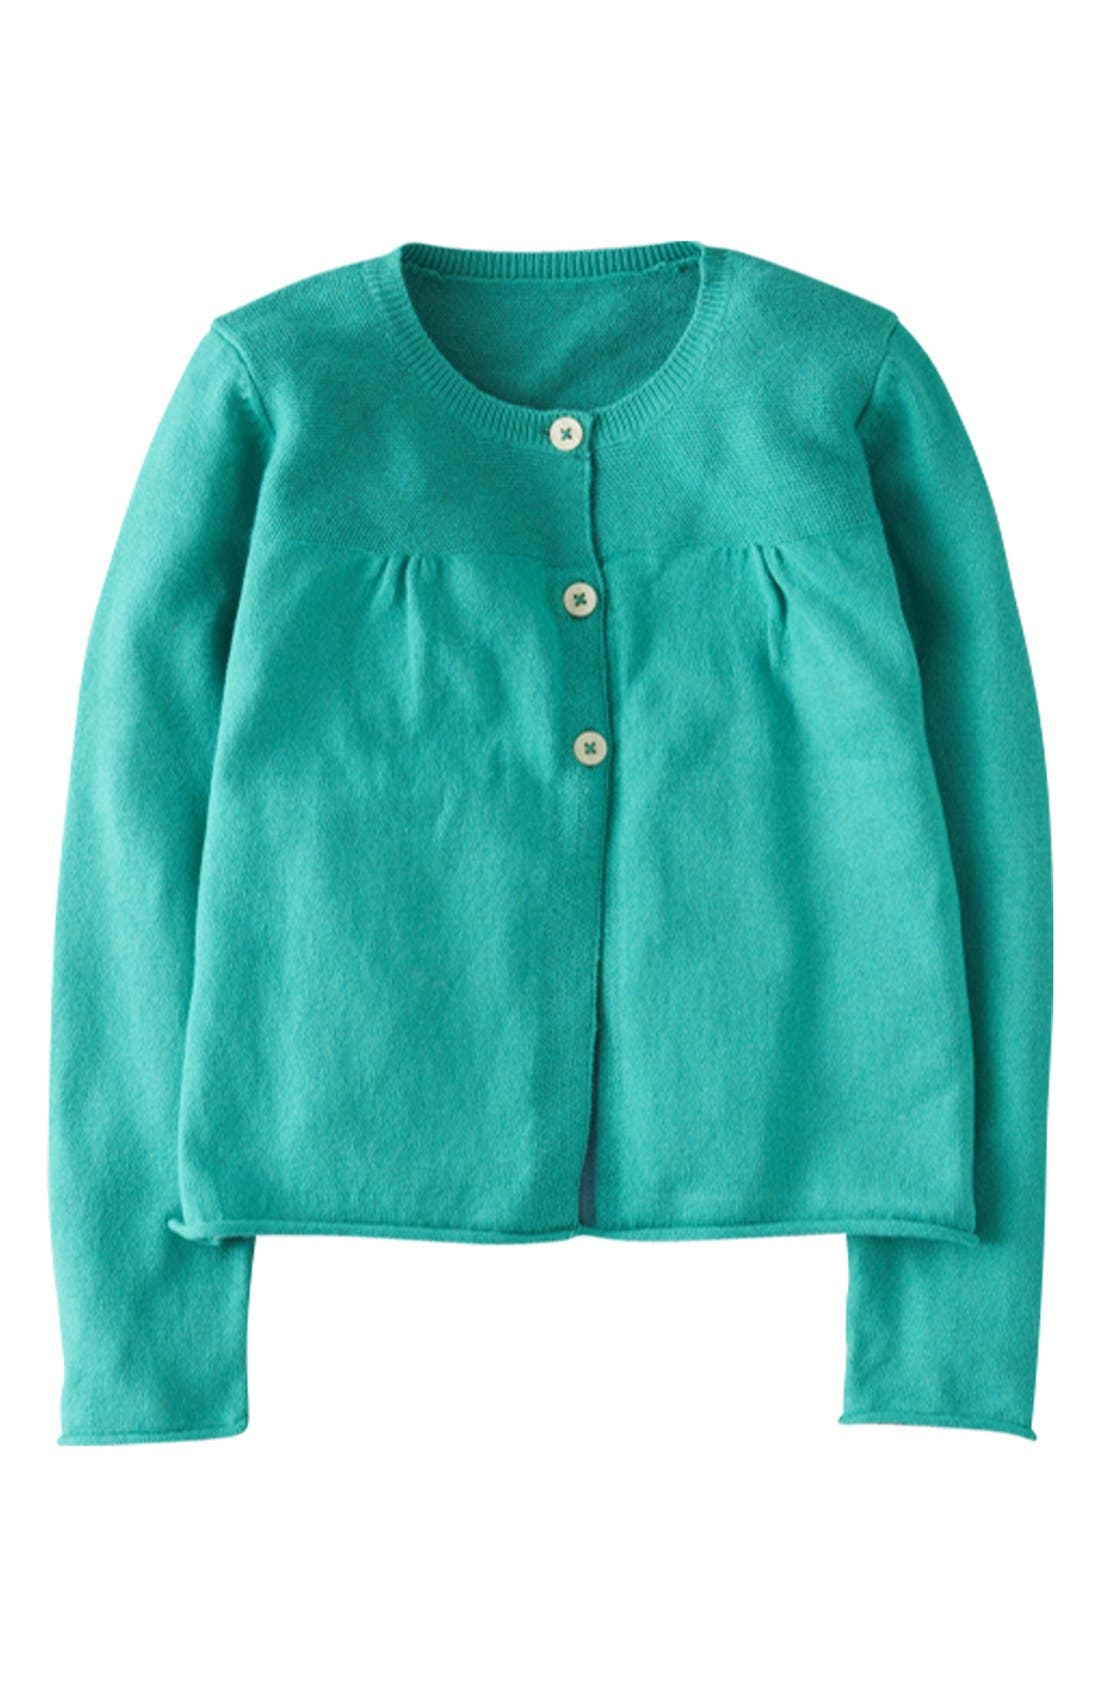 Main Image - Mini Boden 'Everyday' Cardigan (Little Girls & Big Girls)